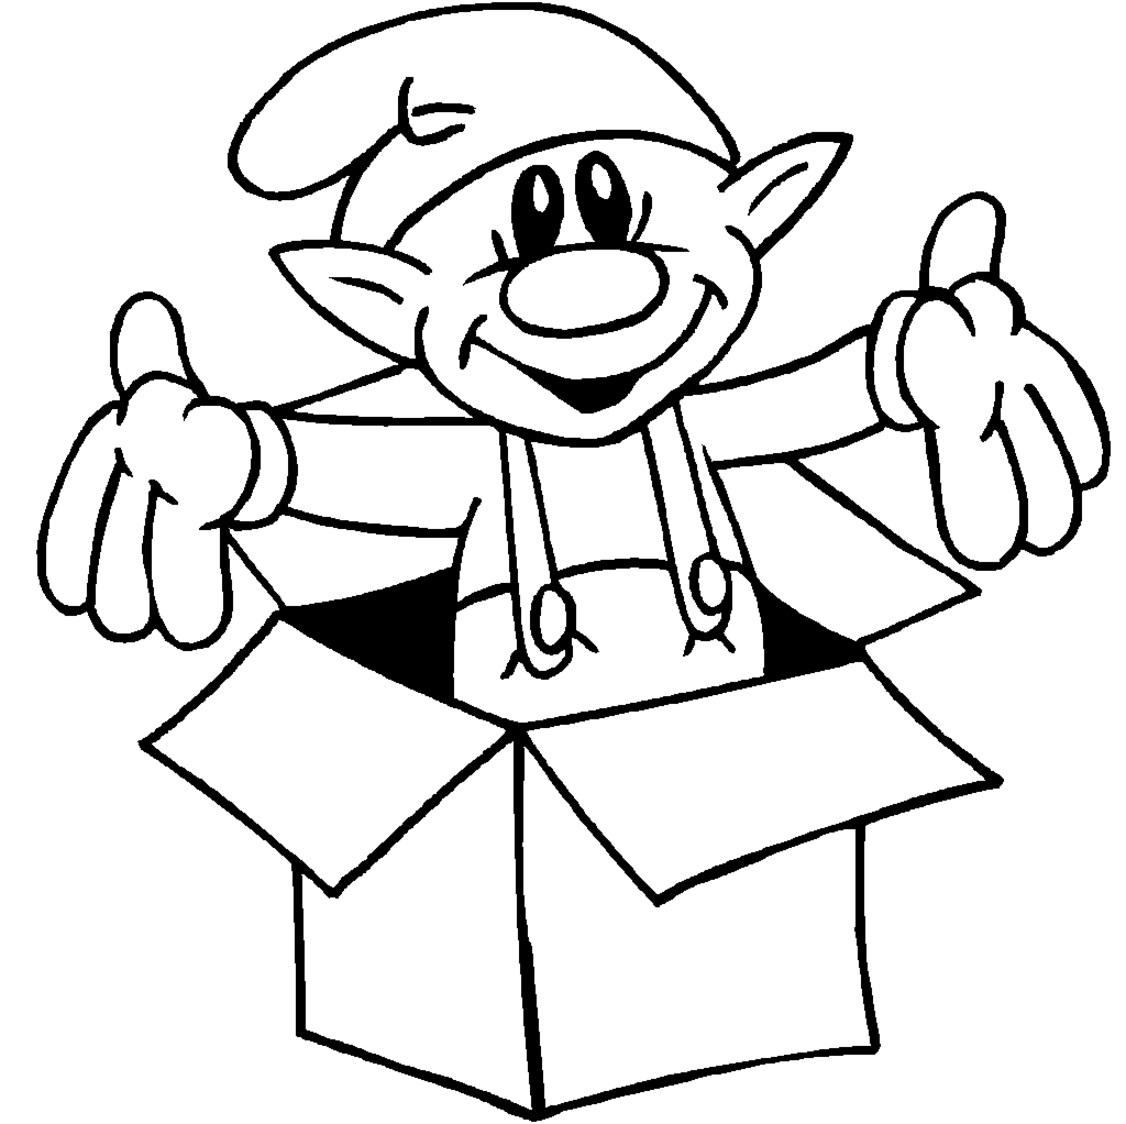 Free Printable Christmas Elf Coloring Pages With Quick Pictures To Print 6138